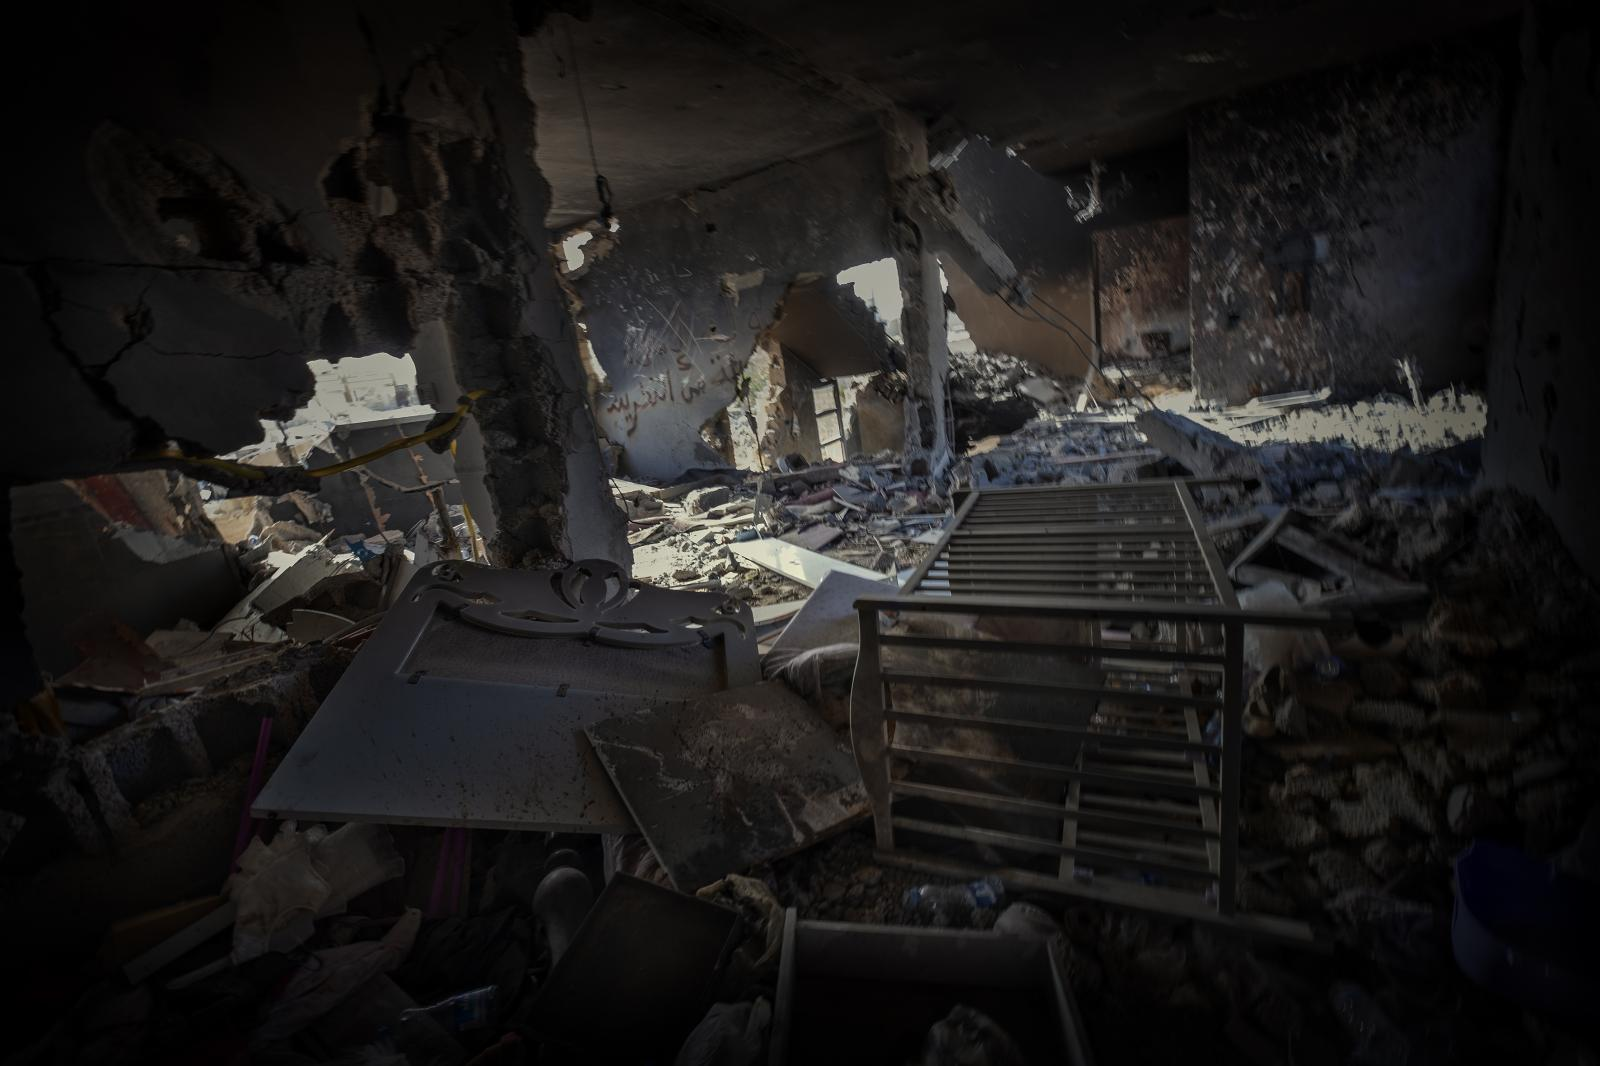 A room that had belonged to a child destroyed in the fight against ISIS in Sirte. The remains of a crib can still be seen (Libya, 2016)